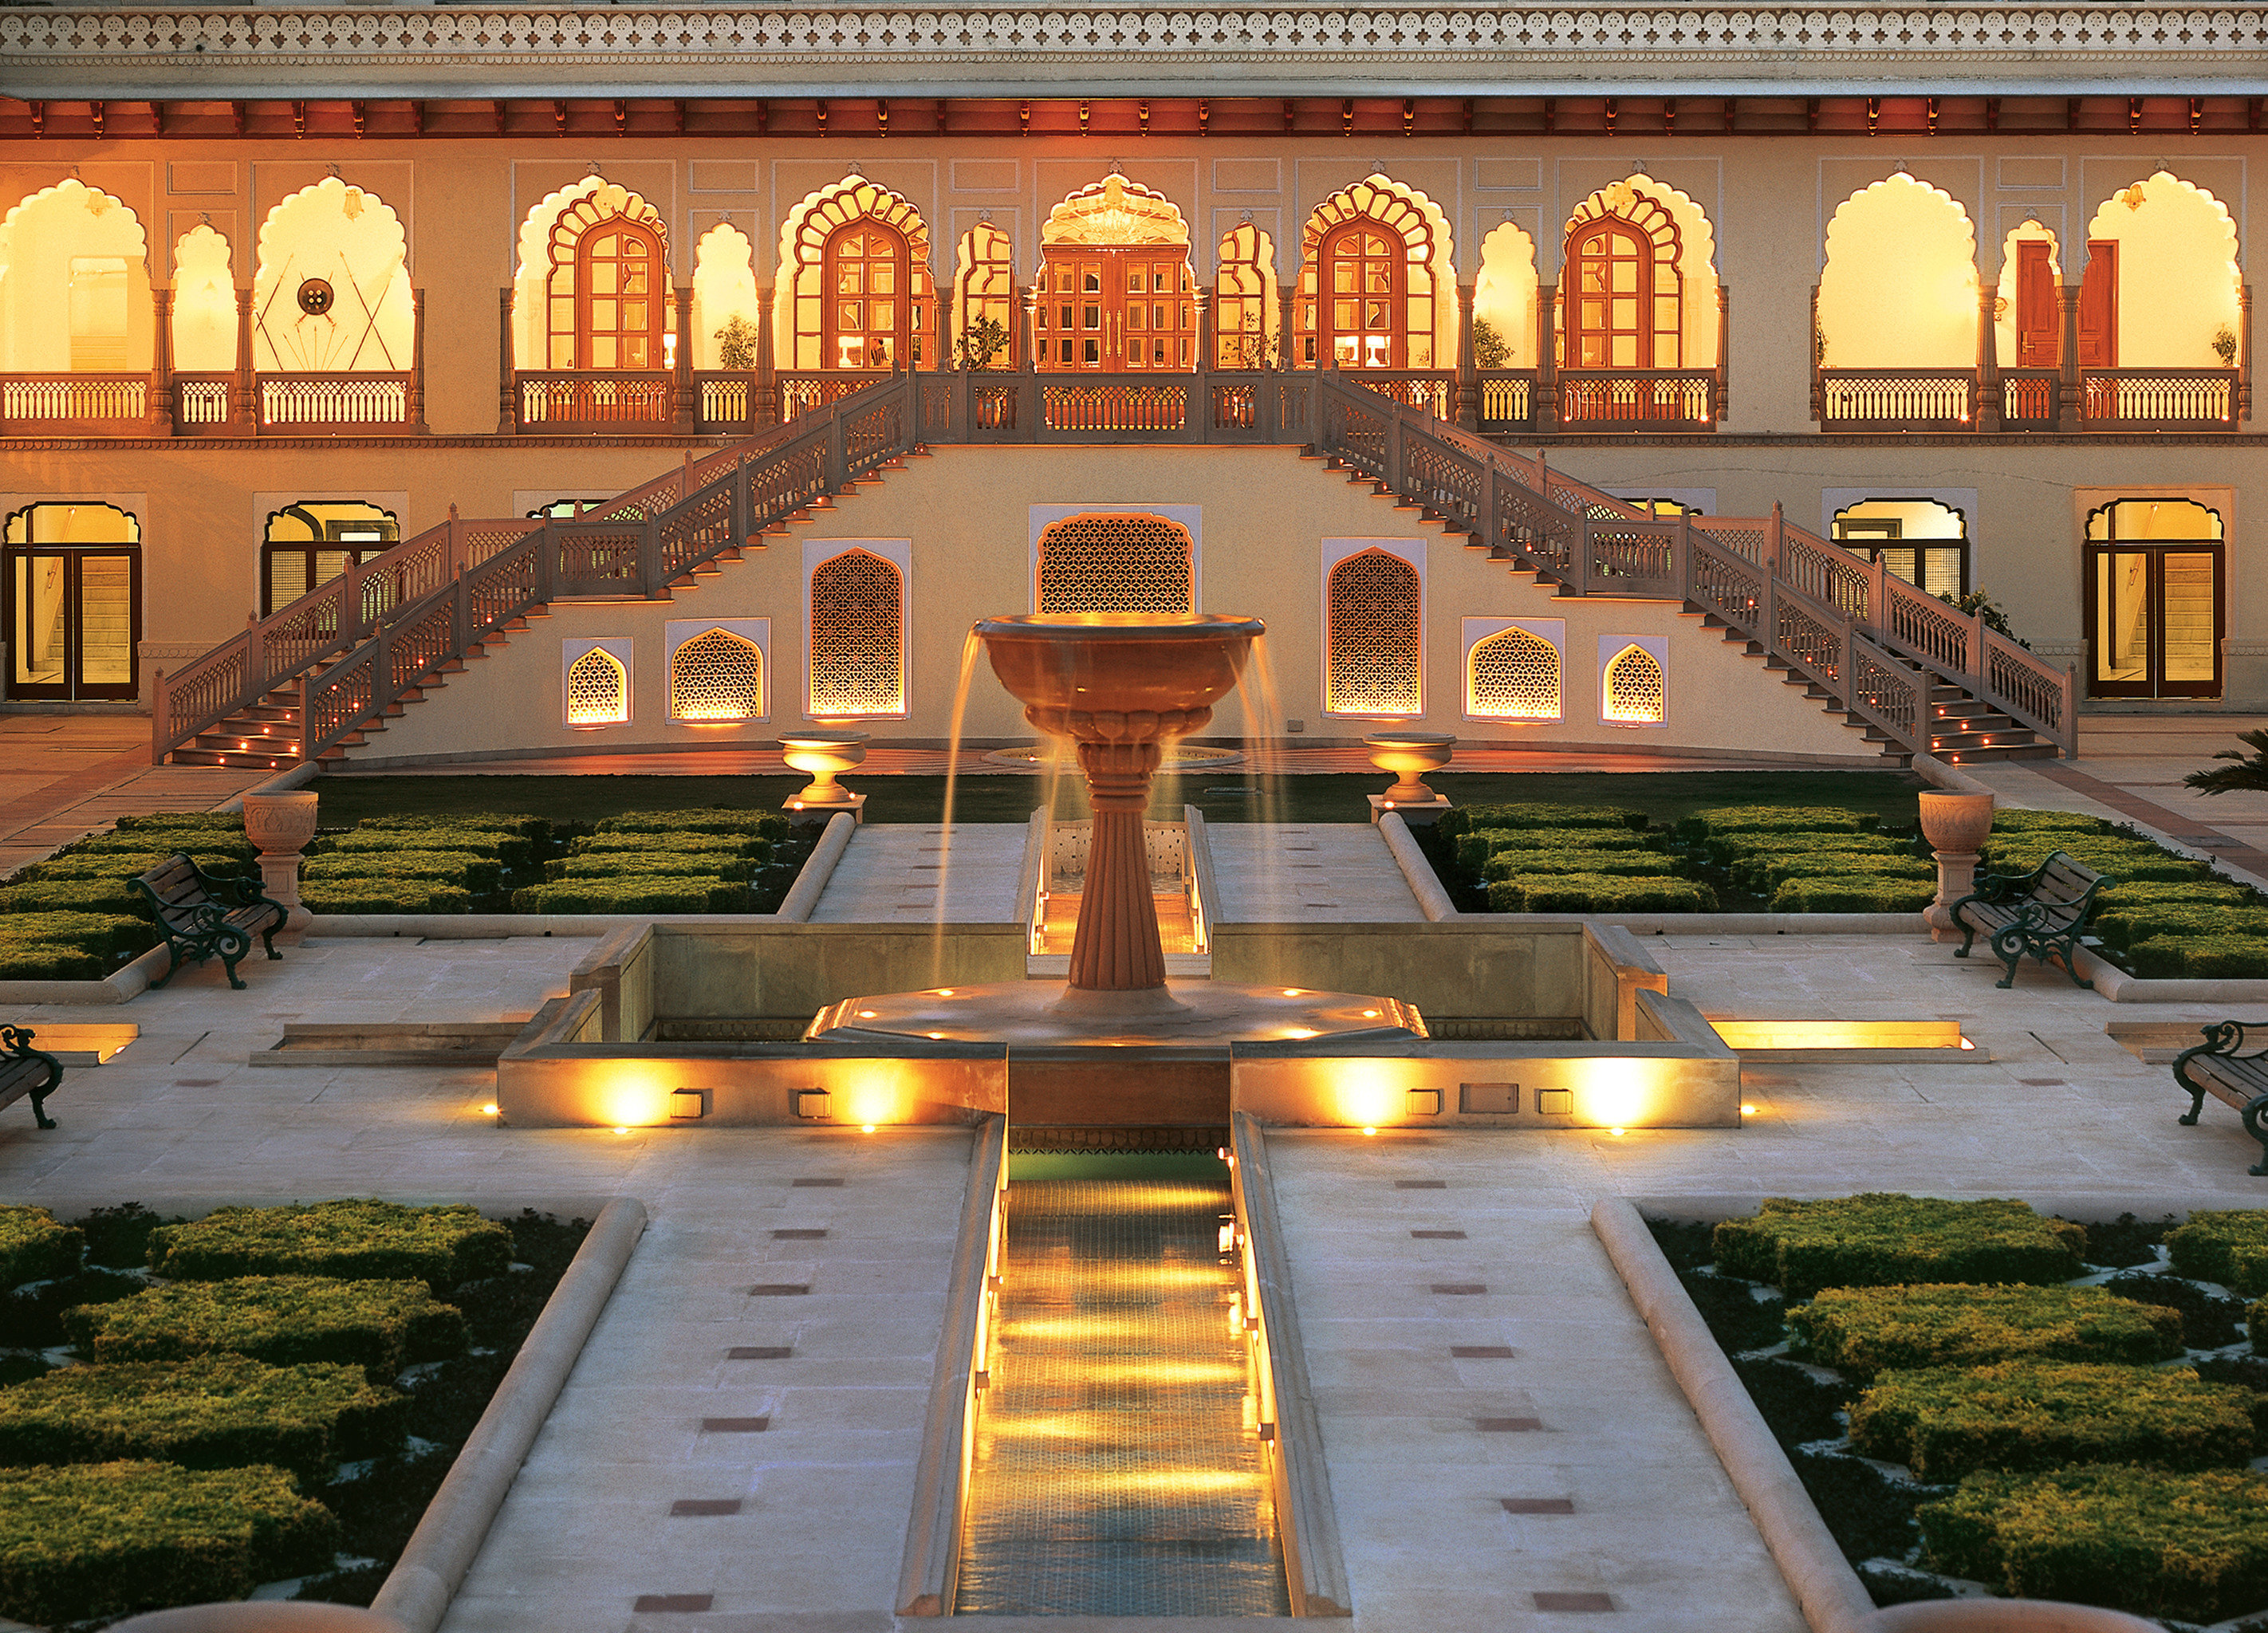 Architecture Buildings Elegant Exterior Grounds Hotels Luxury Luxury Travel Resort plaza building palace mansion